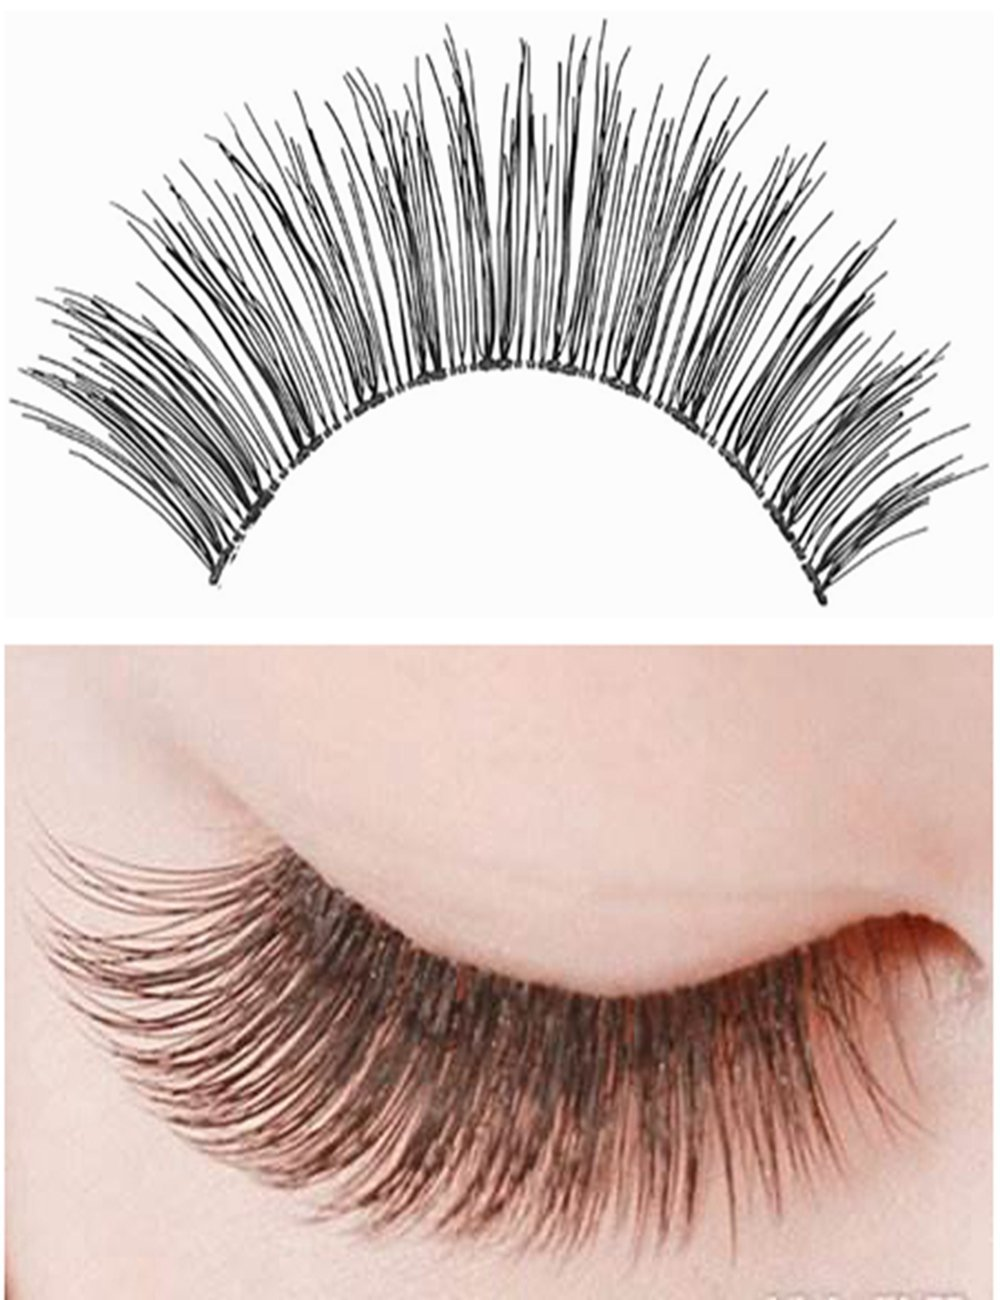 6f4df707b26 Get Quotations · Human Hair Fake Eyelashes Lightweight False Eyelashes  Handmade Natural Hair Eyelashes In Style Black Wholesale